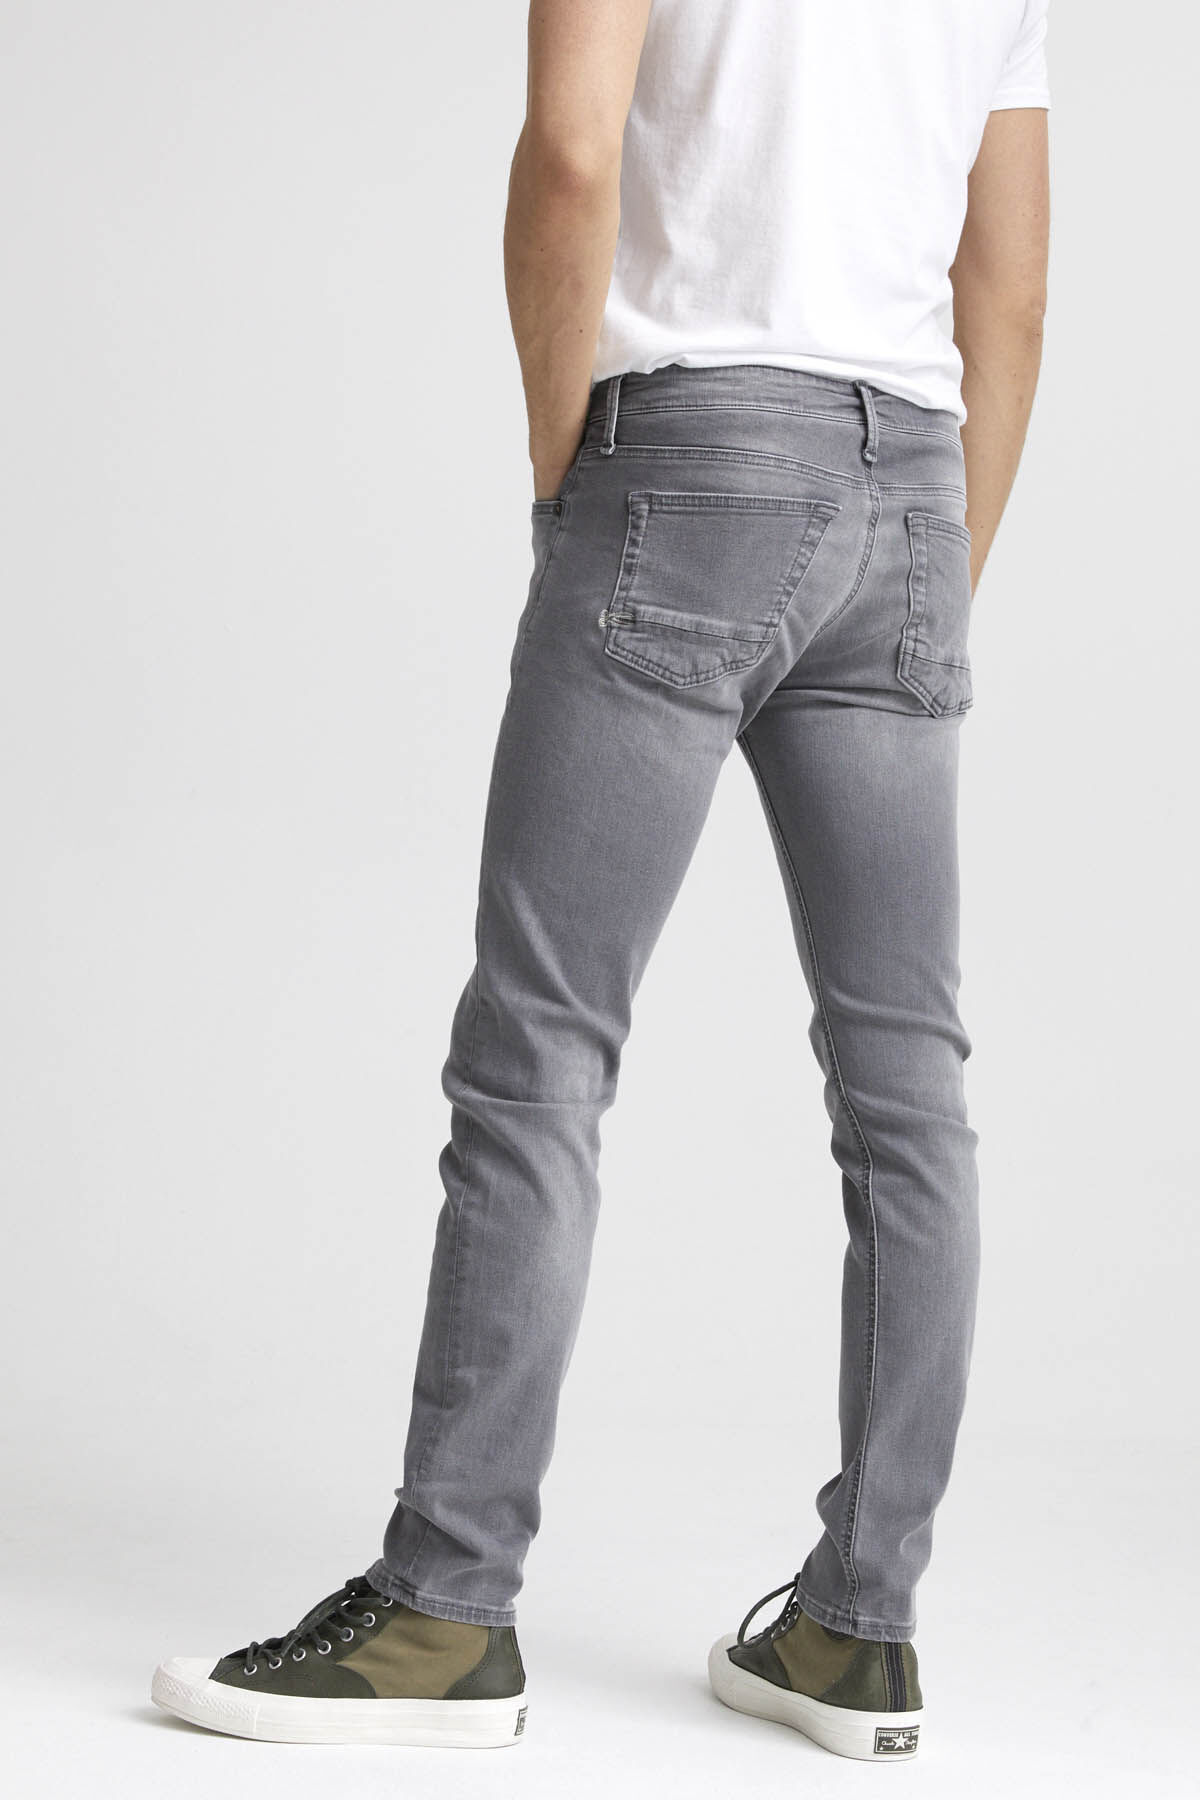 BOLT Grey Subtle Fade Denim - Skinny Fit